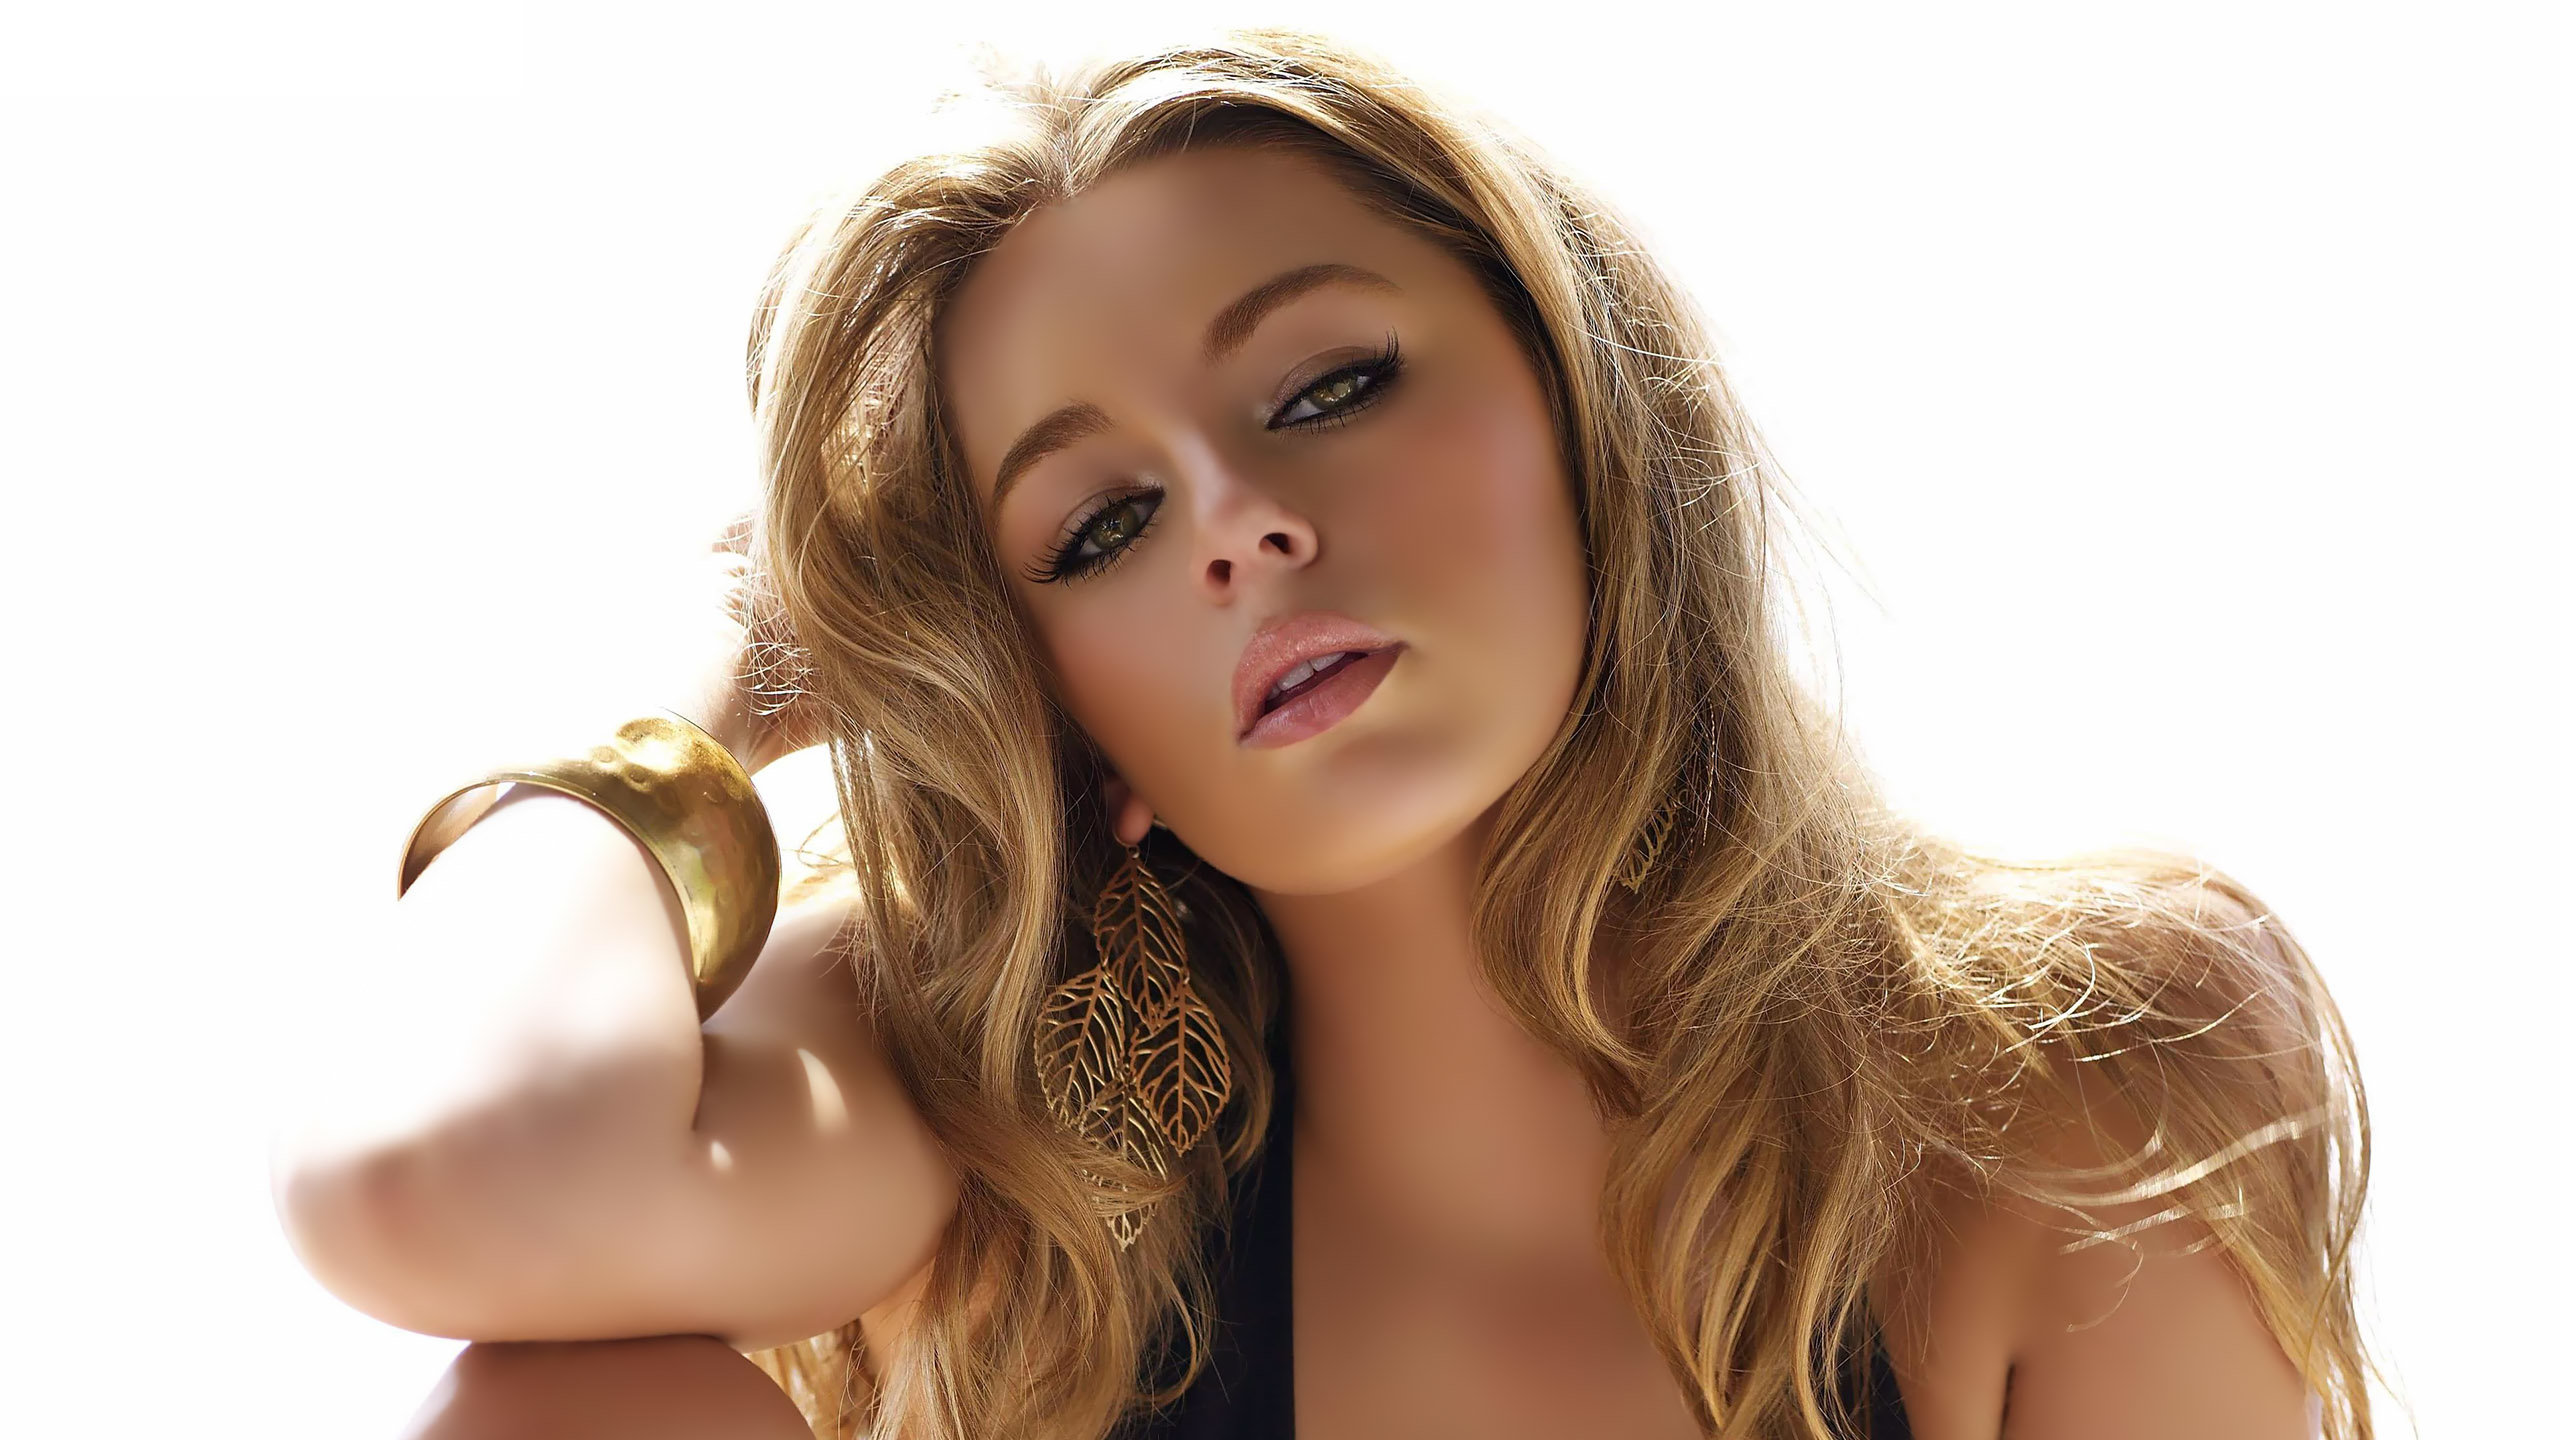 High resolution Keeley Hazell hd 2560x1440 wallpaper ID:34269 for PC